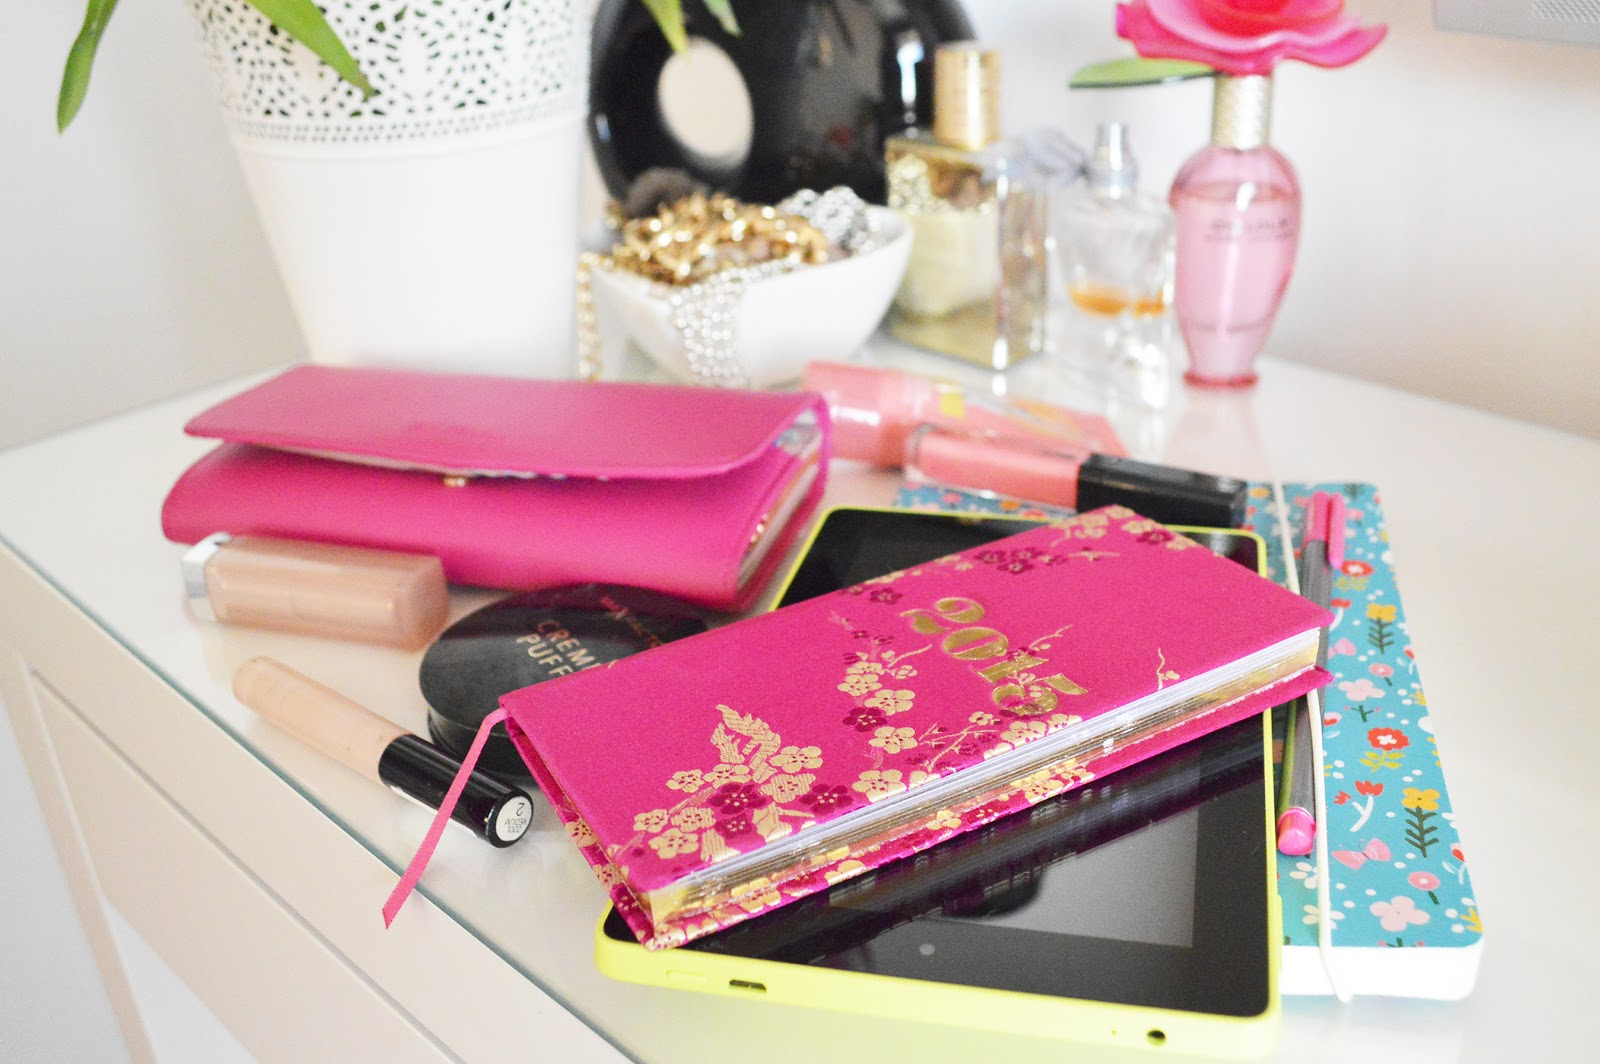 2412b8a85fb My 2015 diary is from Paperchase, where I try and buy all my nice  stationary from since it's all so pretty! This is a slimline one that's  perfect handbag ...